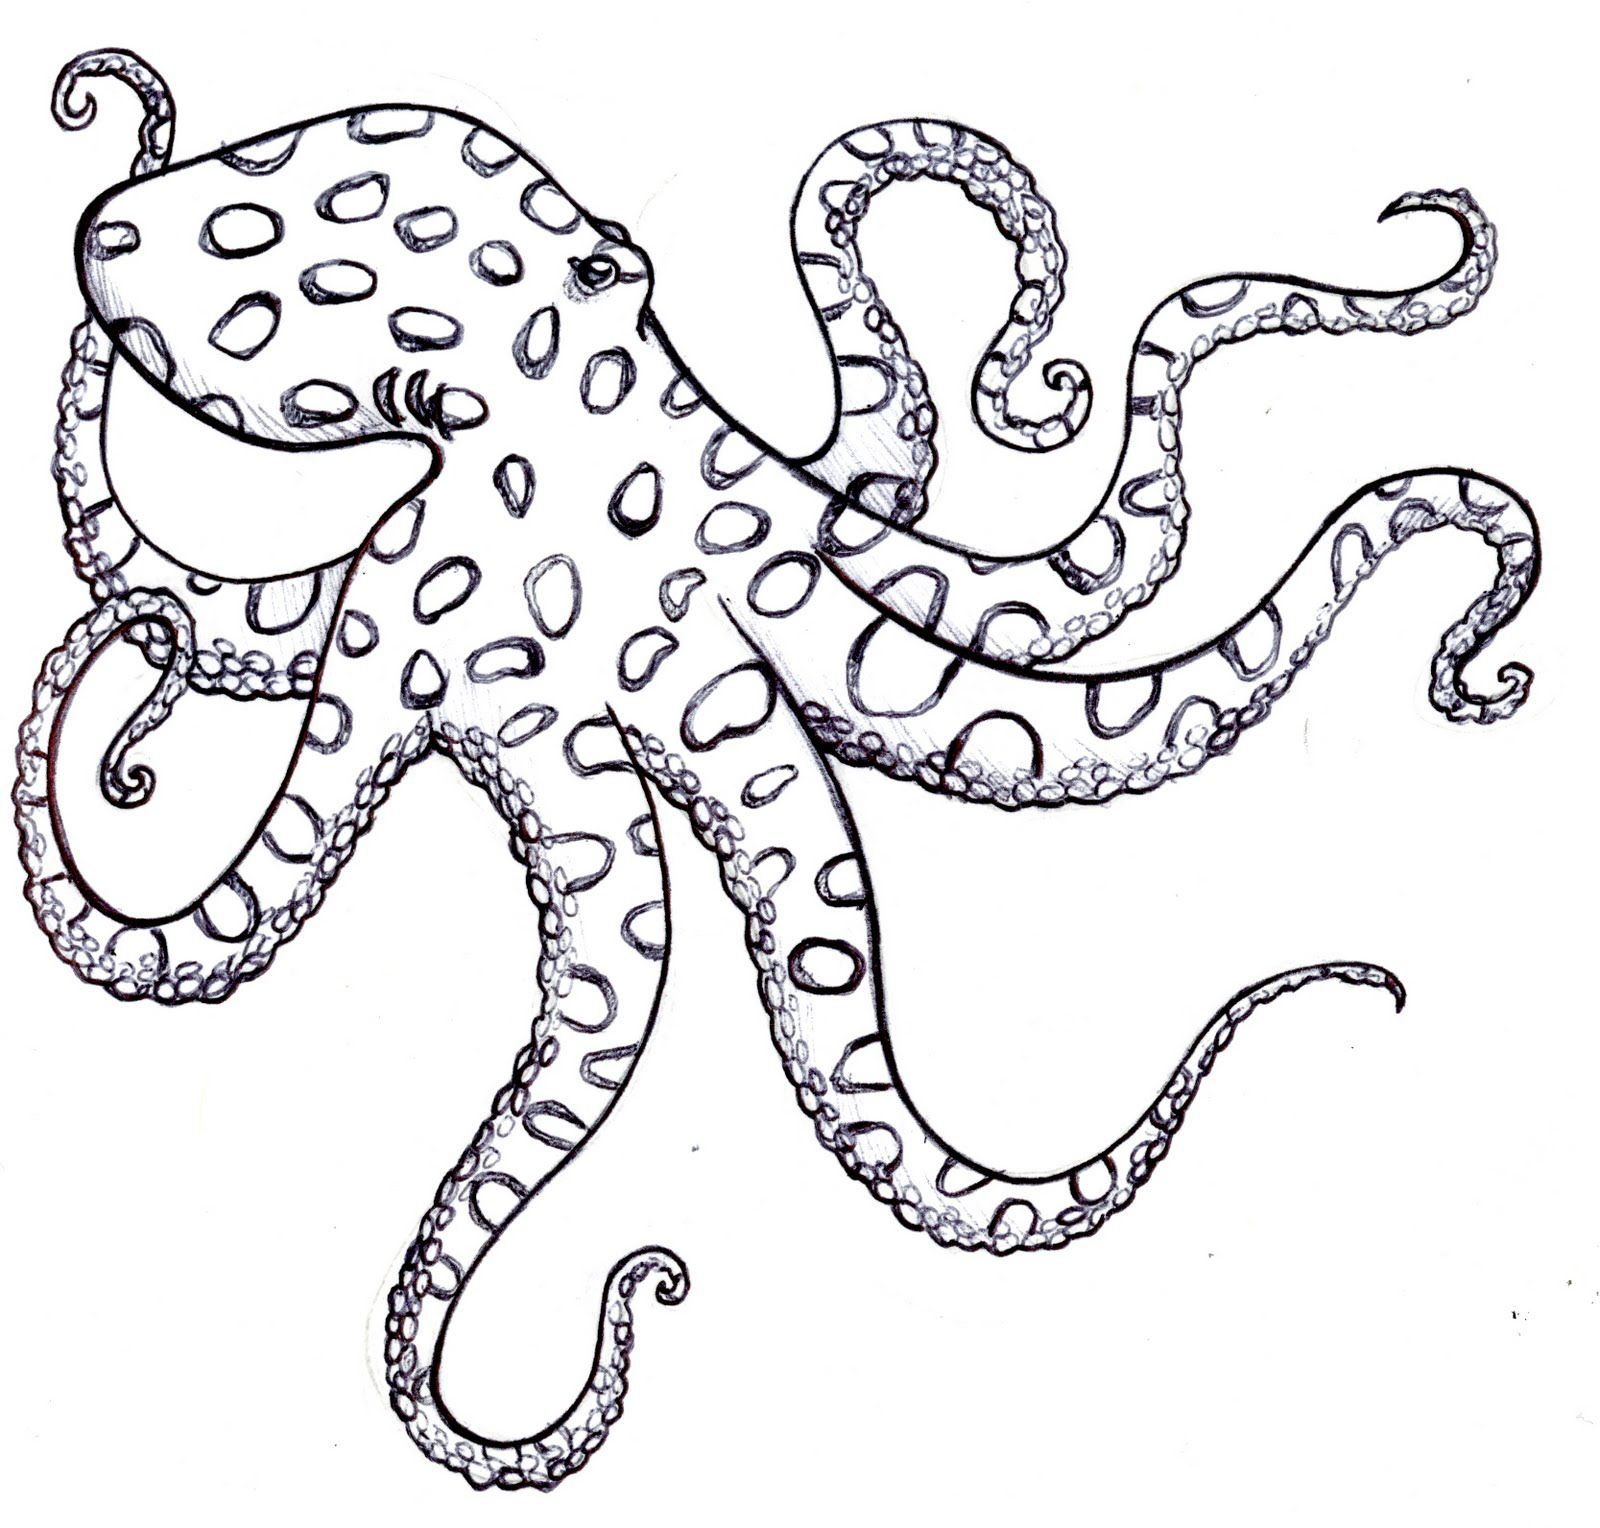 black and white octopus drawing google search